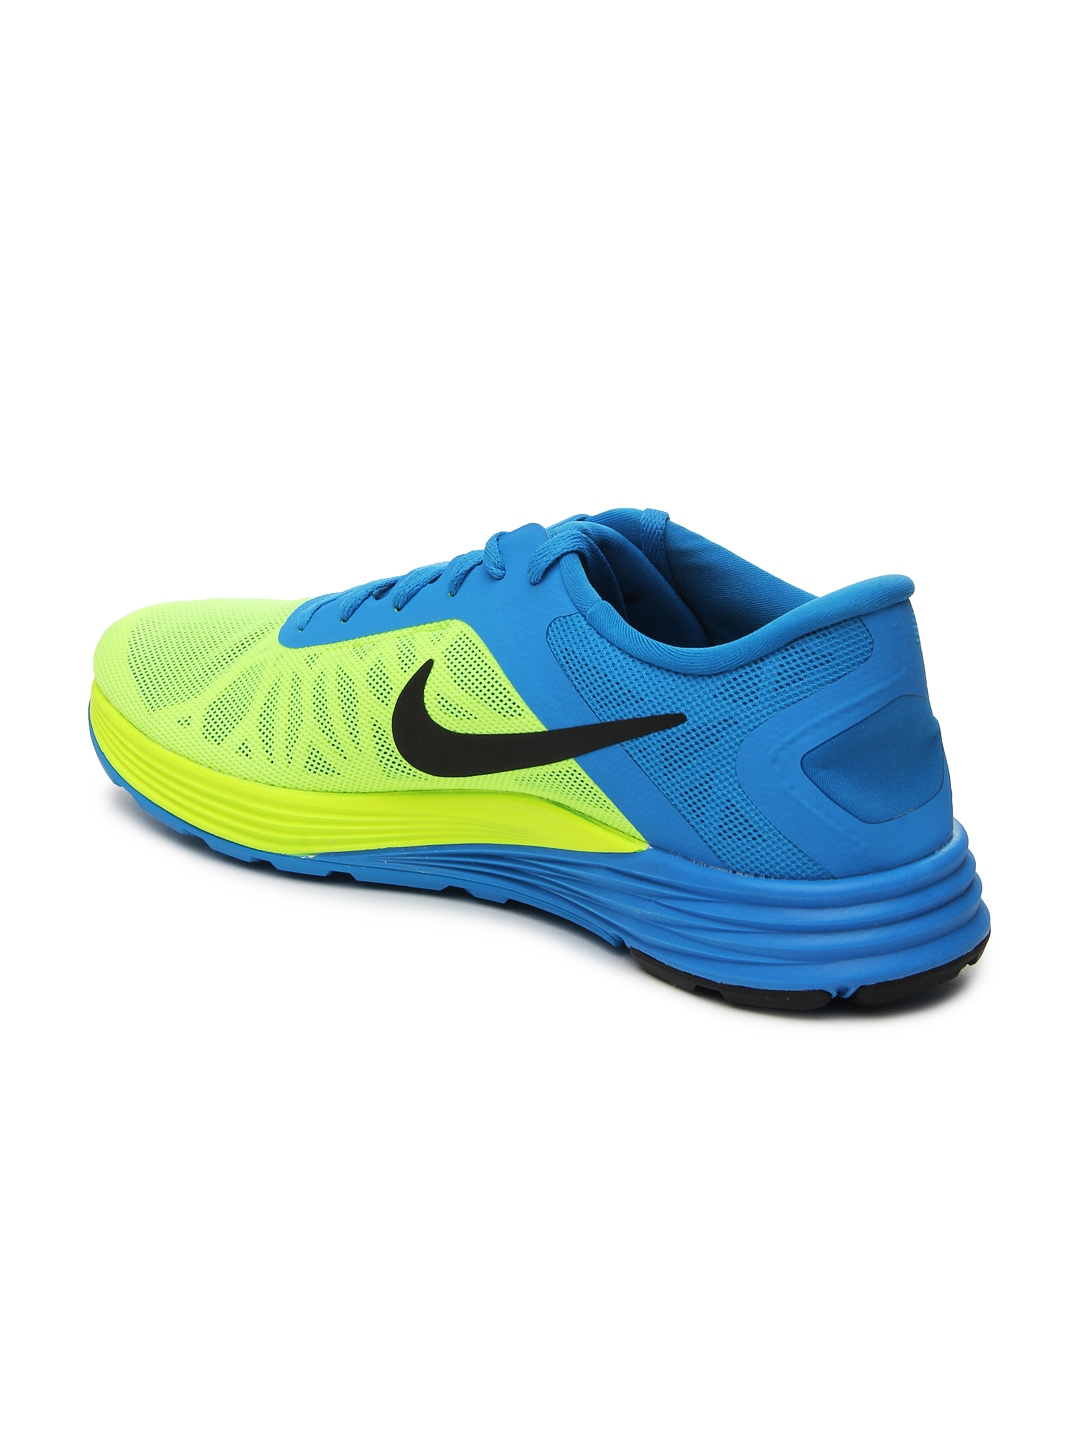 new styles 6340c 63f0c 895c7 c08fe  release date buy nike green lunarlaunch running sports shoes  1370235 for men online in india 3df59